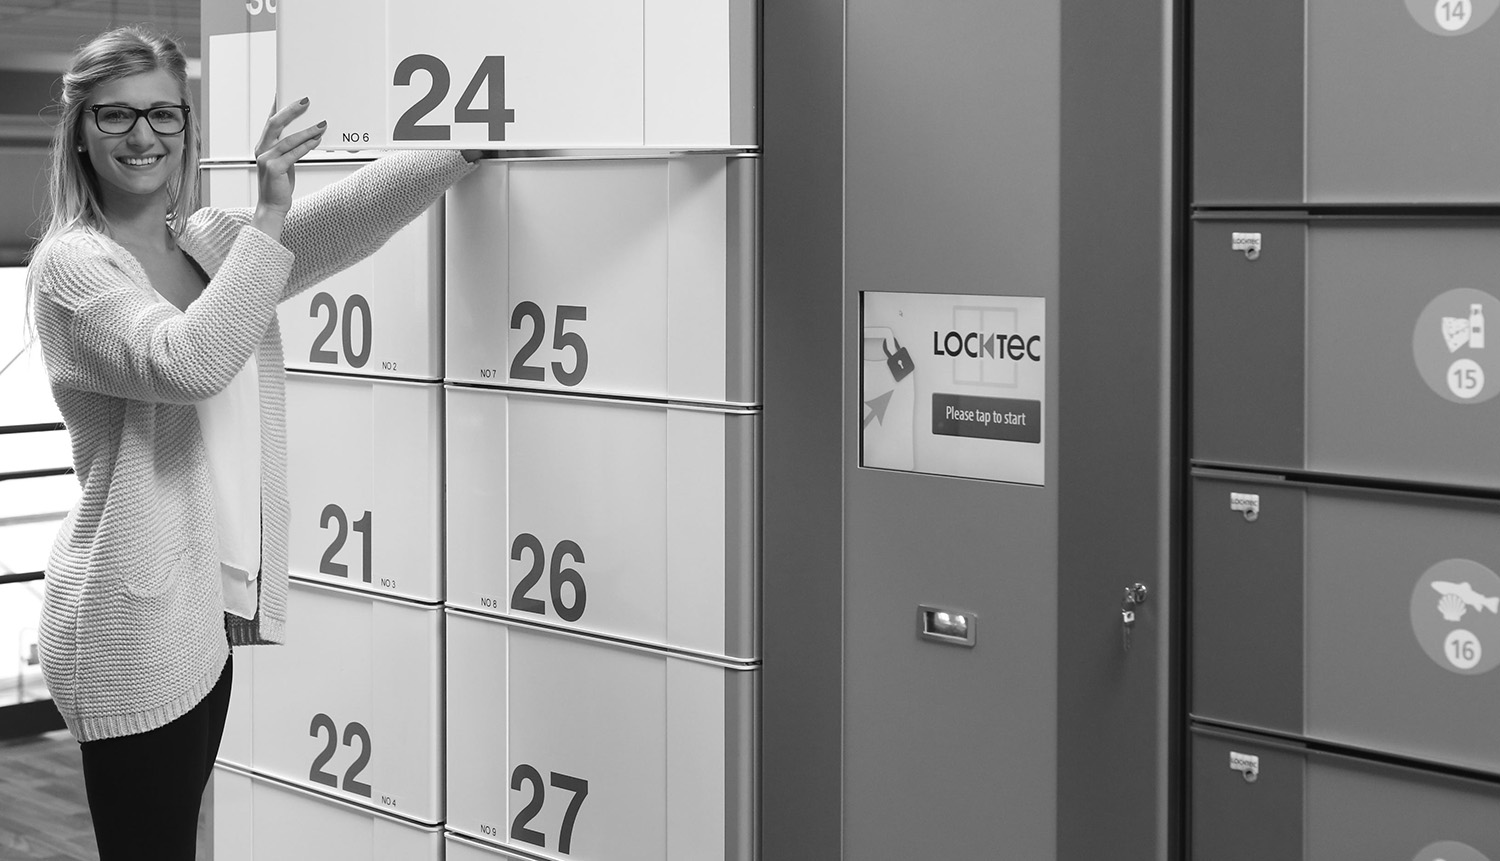 LockTec - Lockers